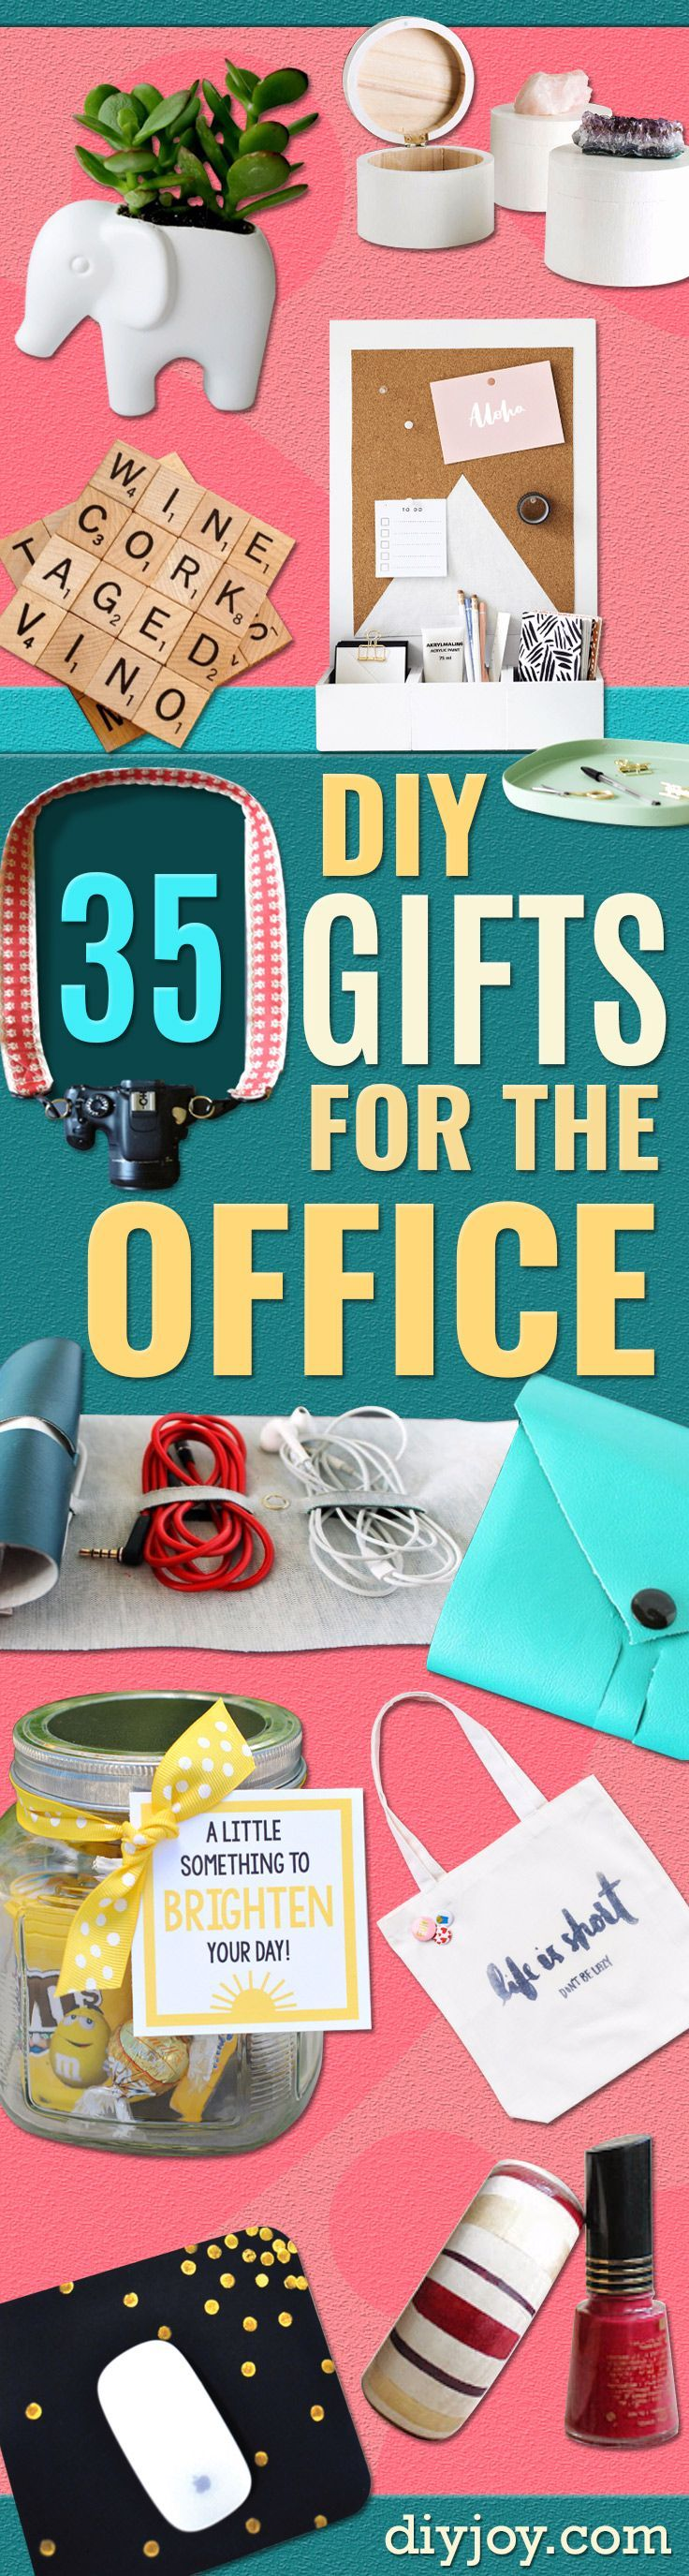 best ideas about office gifts gifts for 17 best ideas about office gifts gifts for employees secret santa and employee gifts